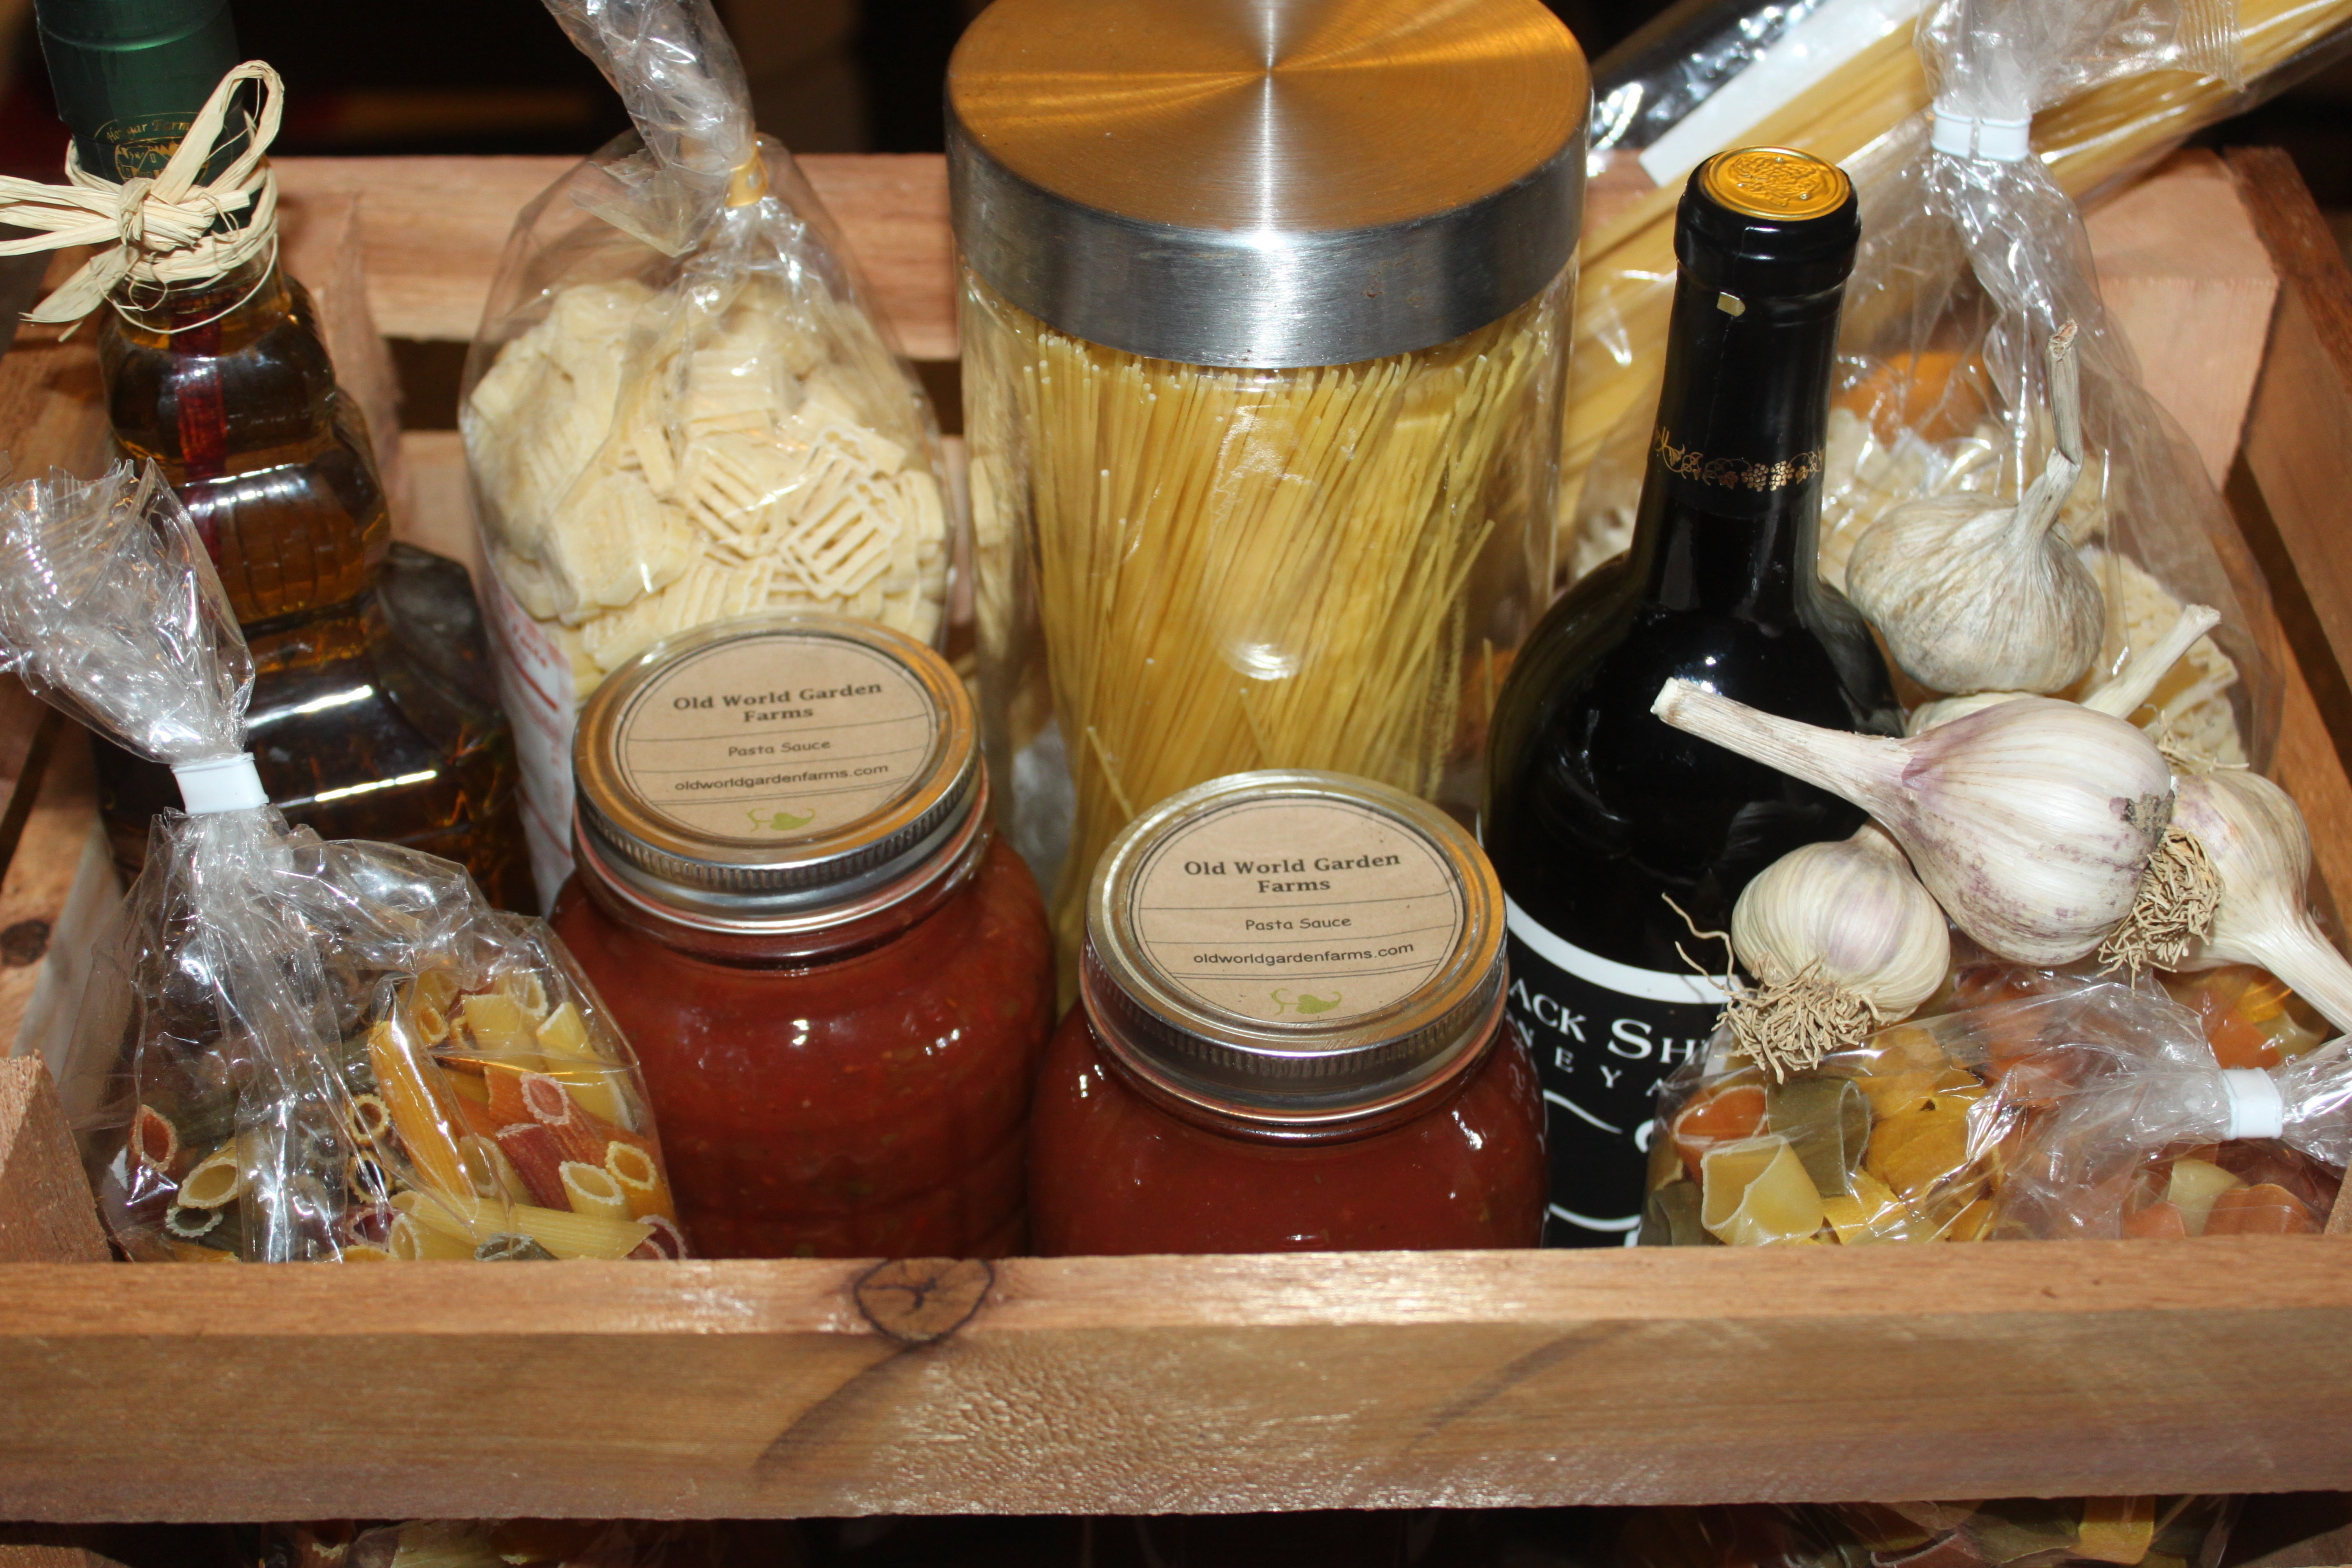 christmas gift baskets creating gifts from the heart home made pasta crate filled with our pasta sauce garlic crushed red